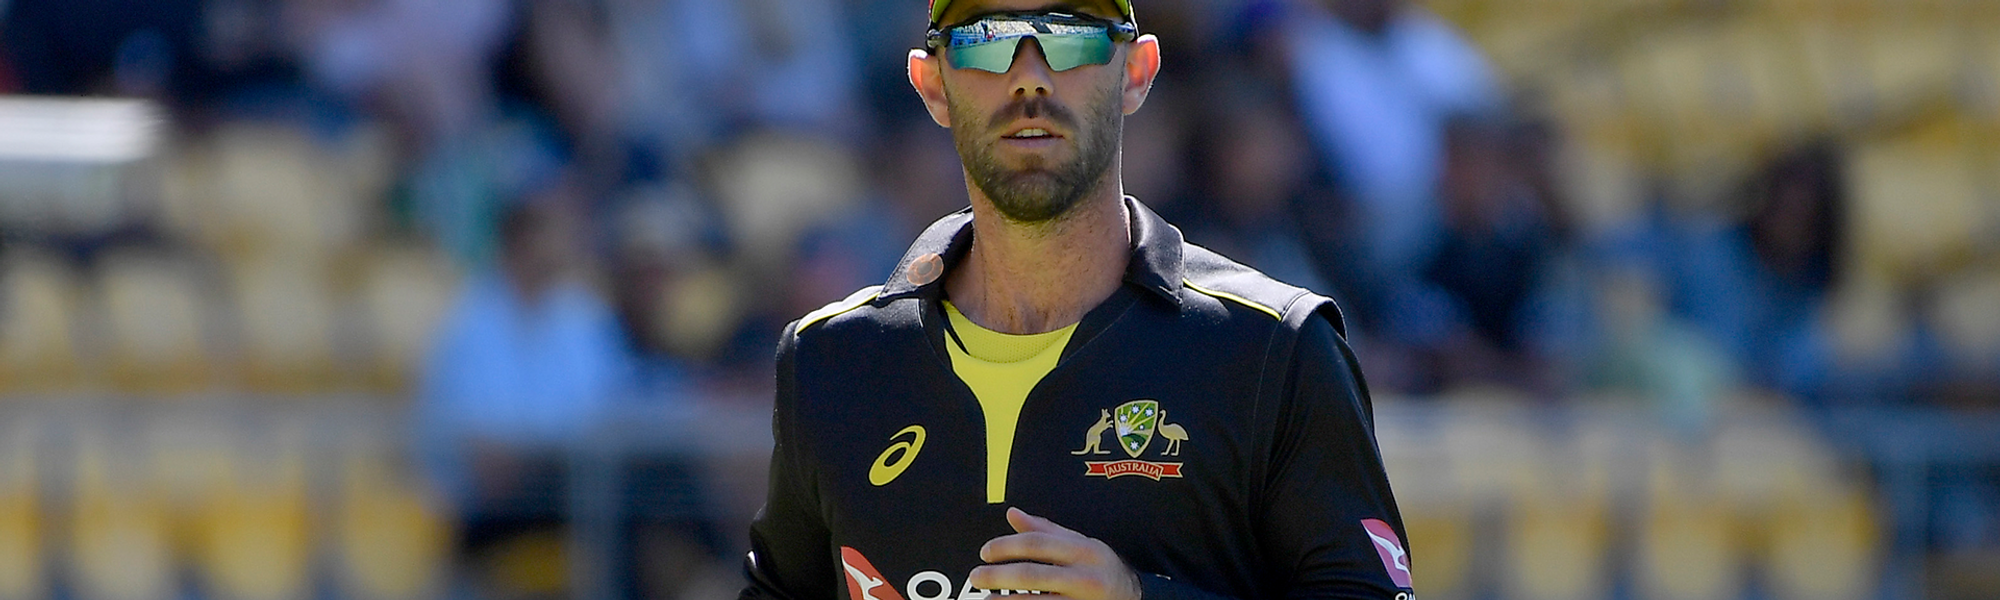 Glenn Maxwell is confident Australia can go all the way at the T20 World Cup